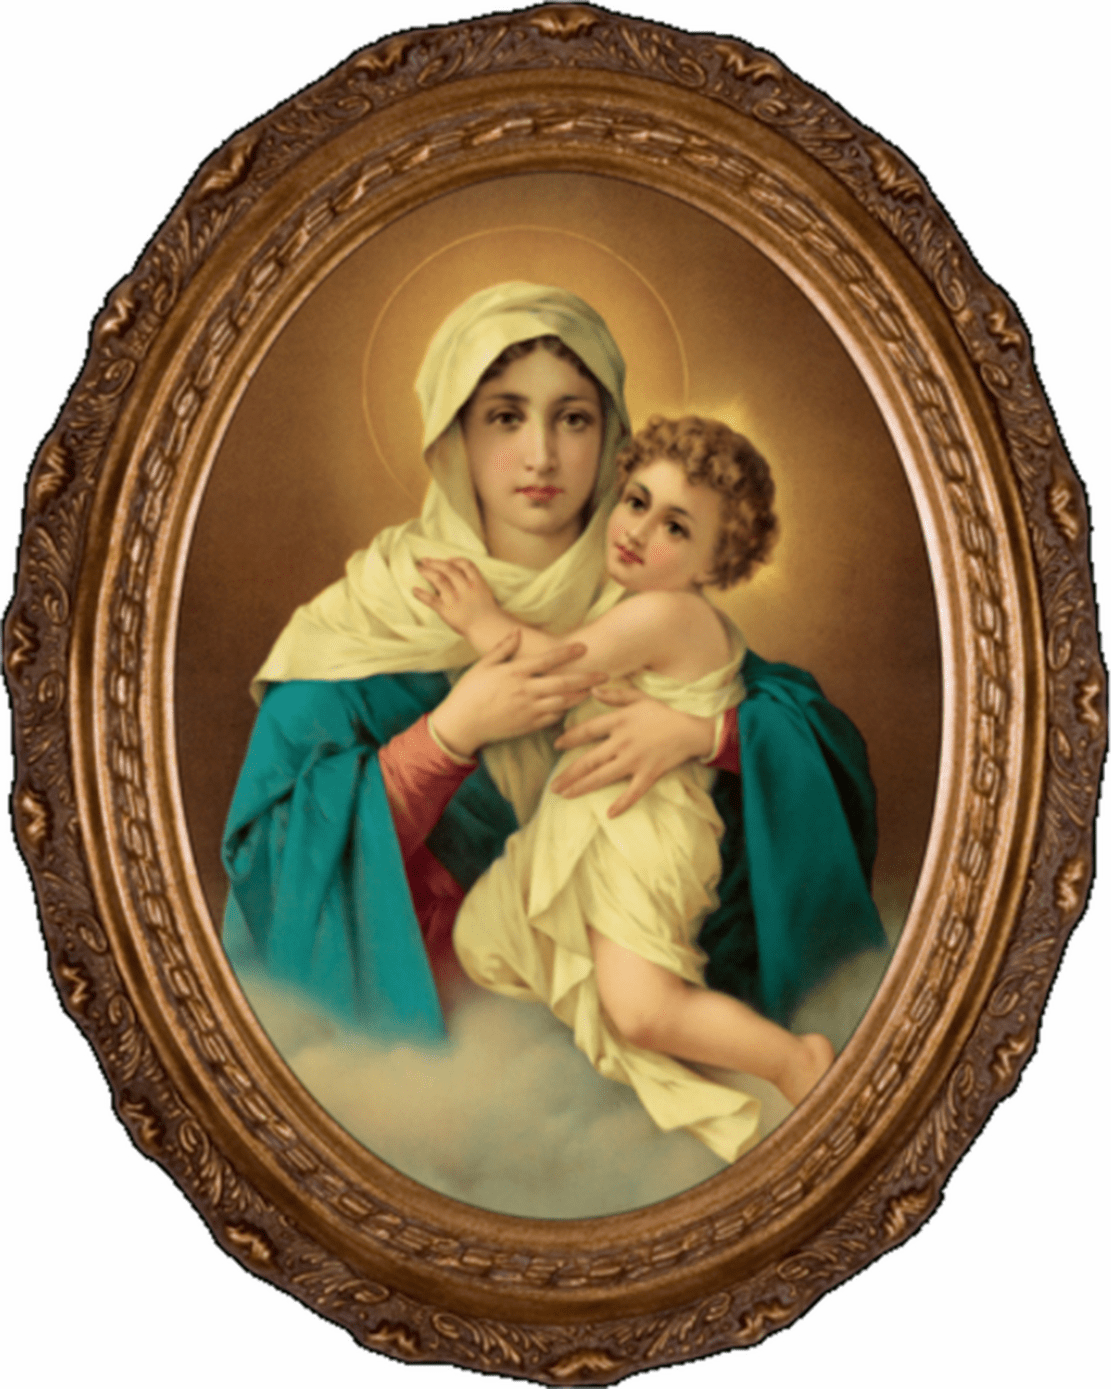 Nelson's Gifts Schoenstatt Madonna Canvas in Oval Frame Wall Picture